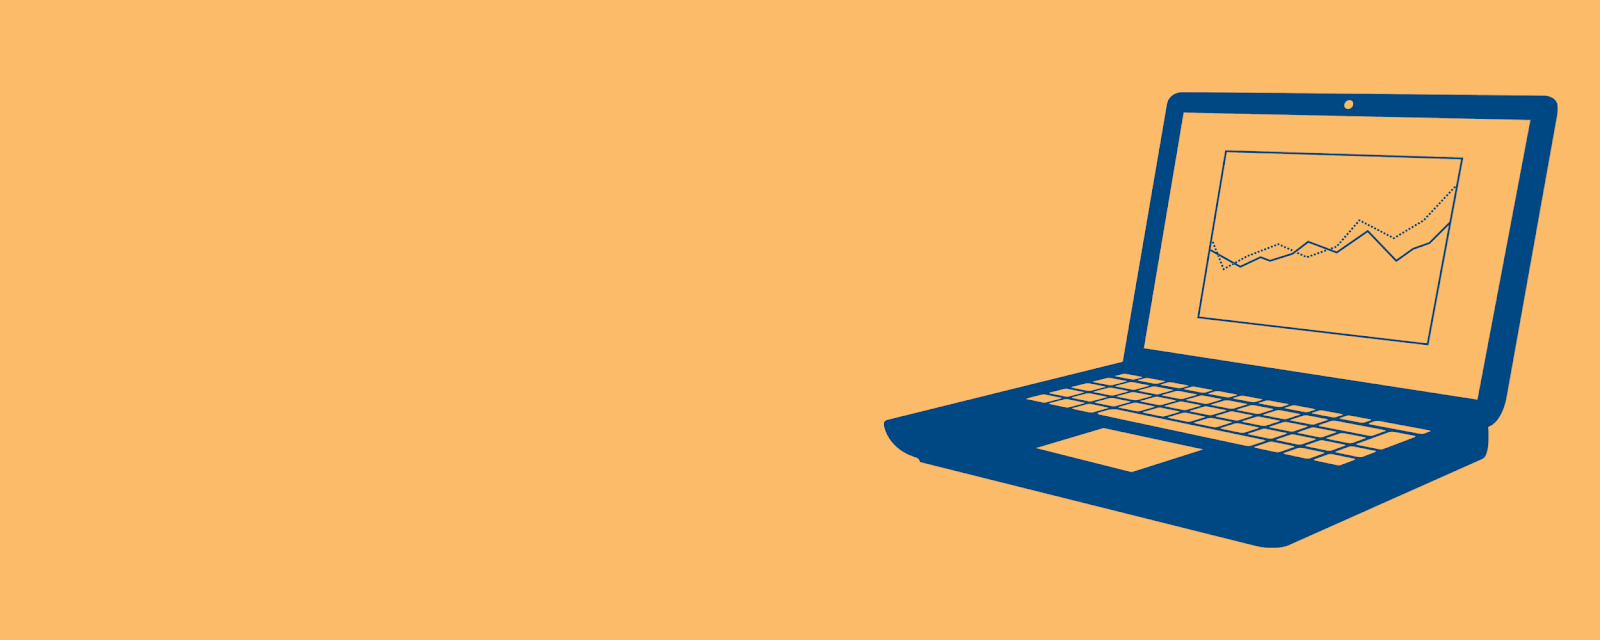 drawing of a laptop in dark blue on an orange background